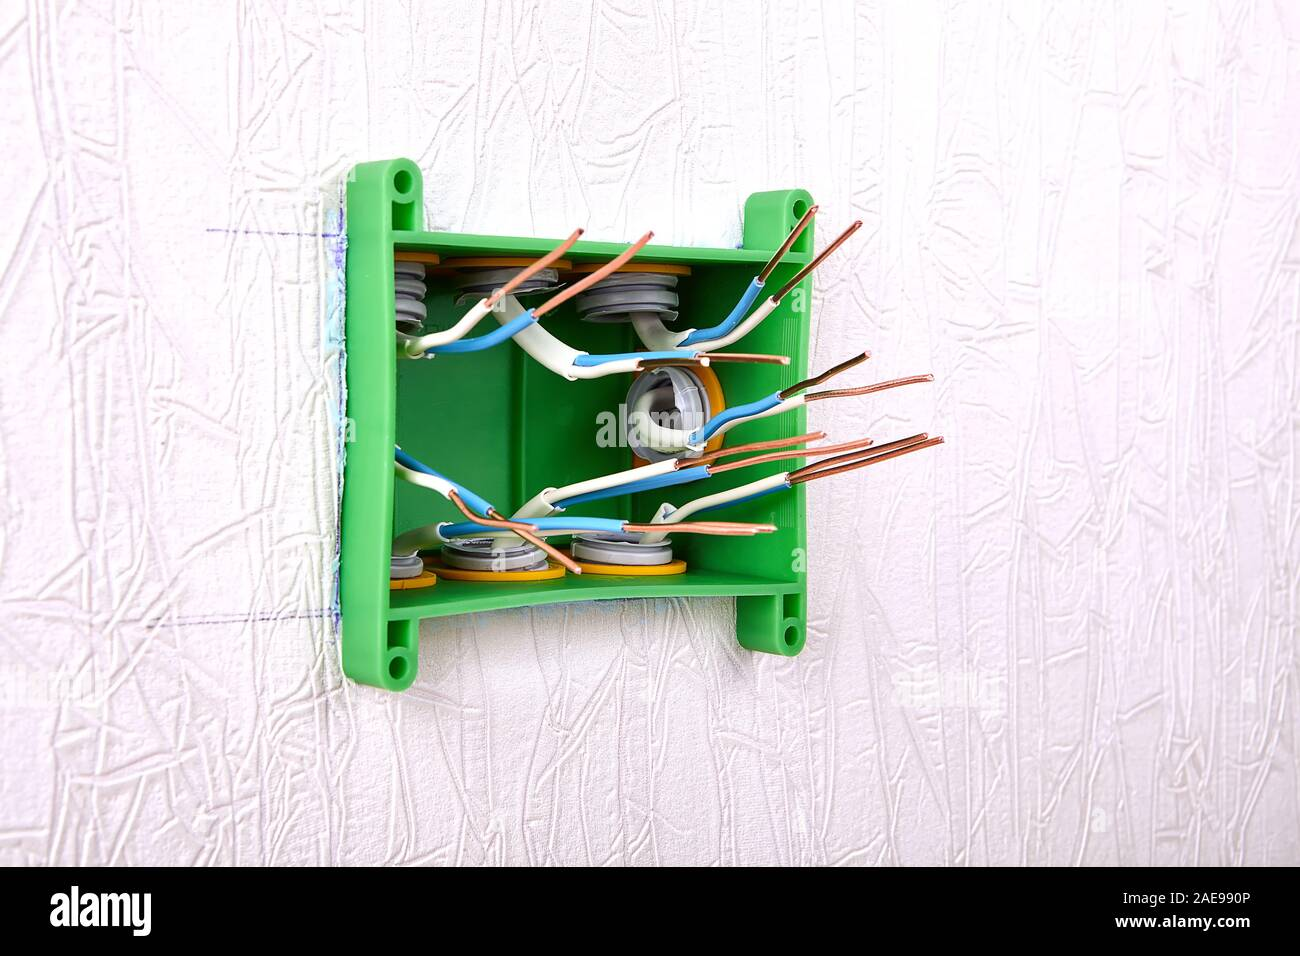 Electrical Panel Of A Distribution Box Or Junction Box With Protruding Ends Of Bare Copper Wires Household Electric Installation Work Home Wiring Re Stock Photo Alamy